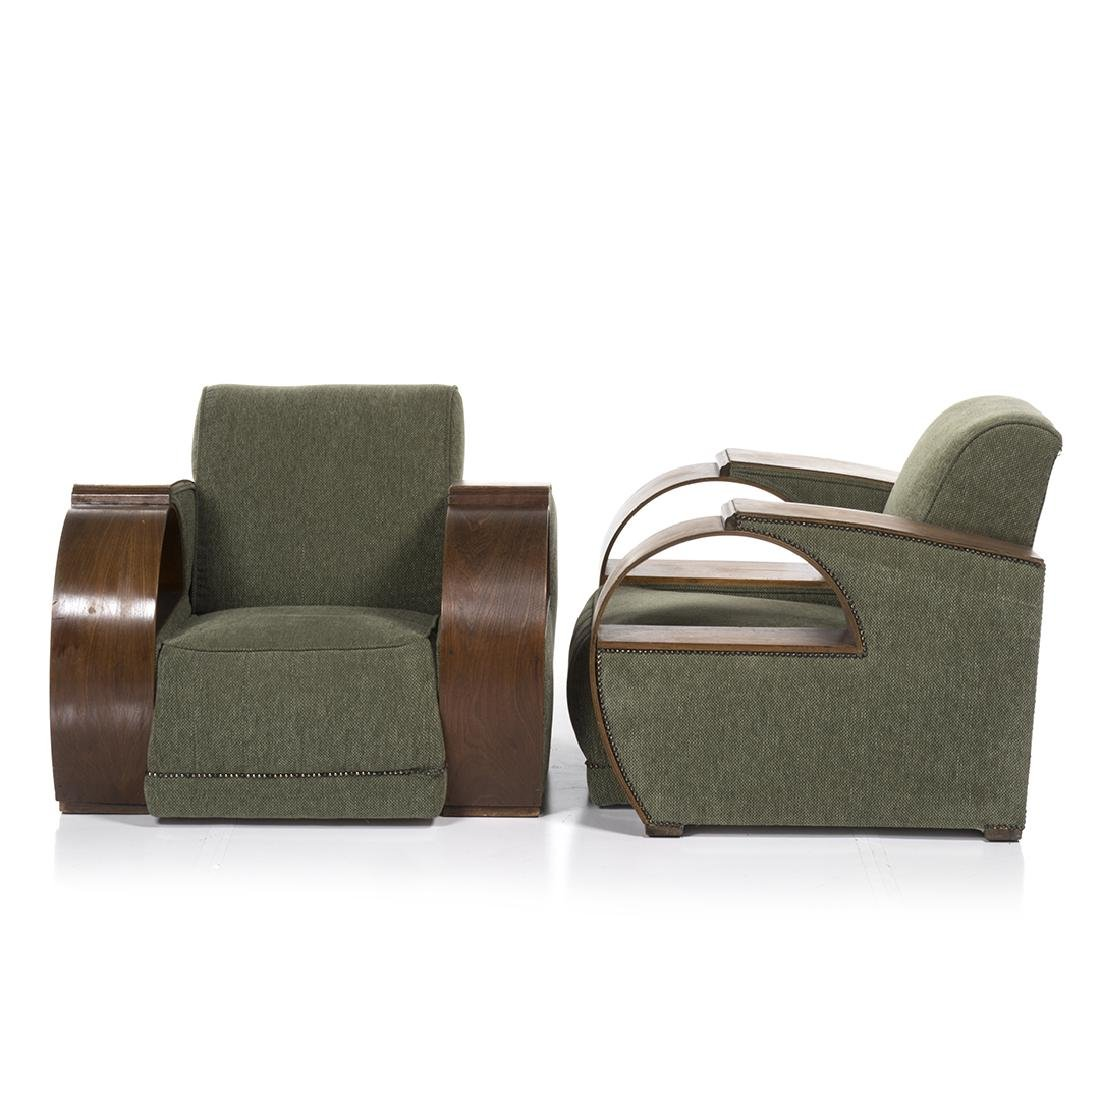 Art Deco Bent Arm Chairs (2) - 2